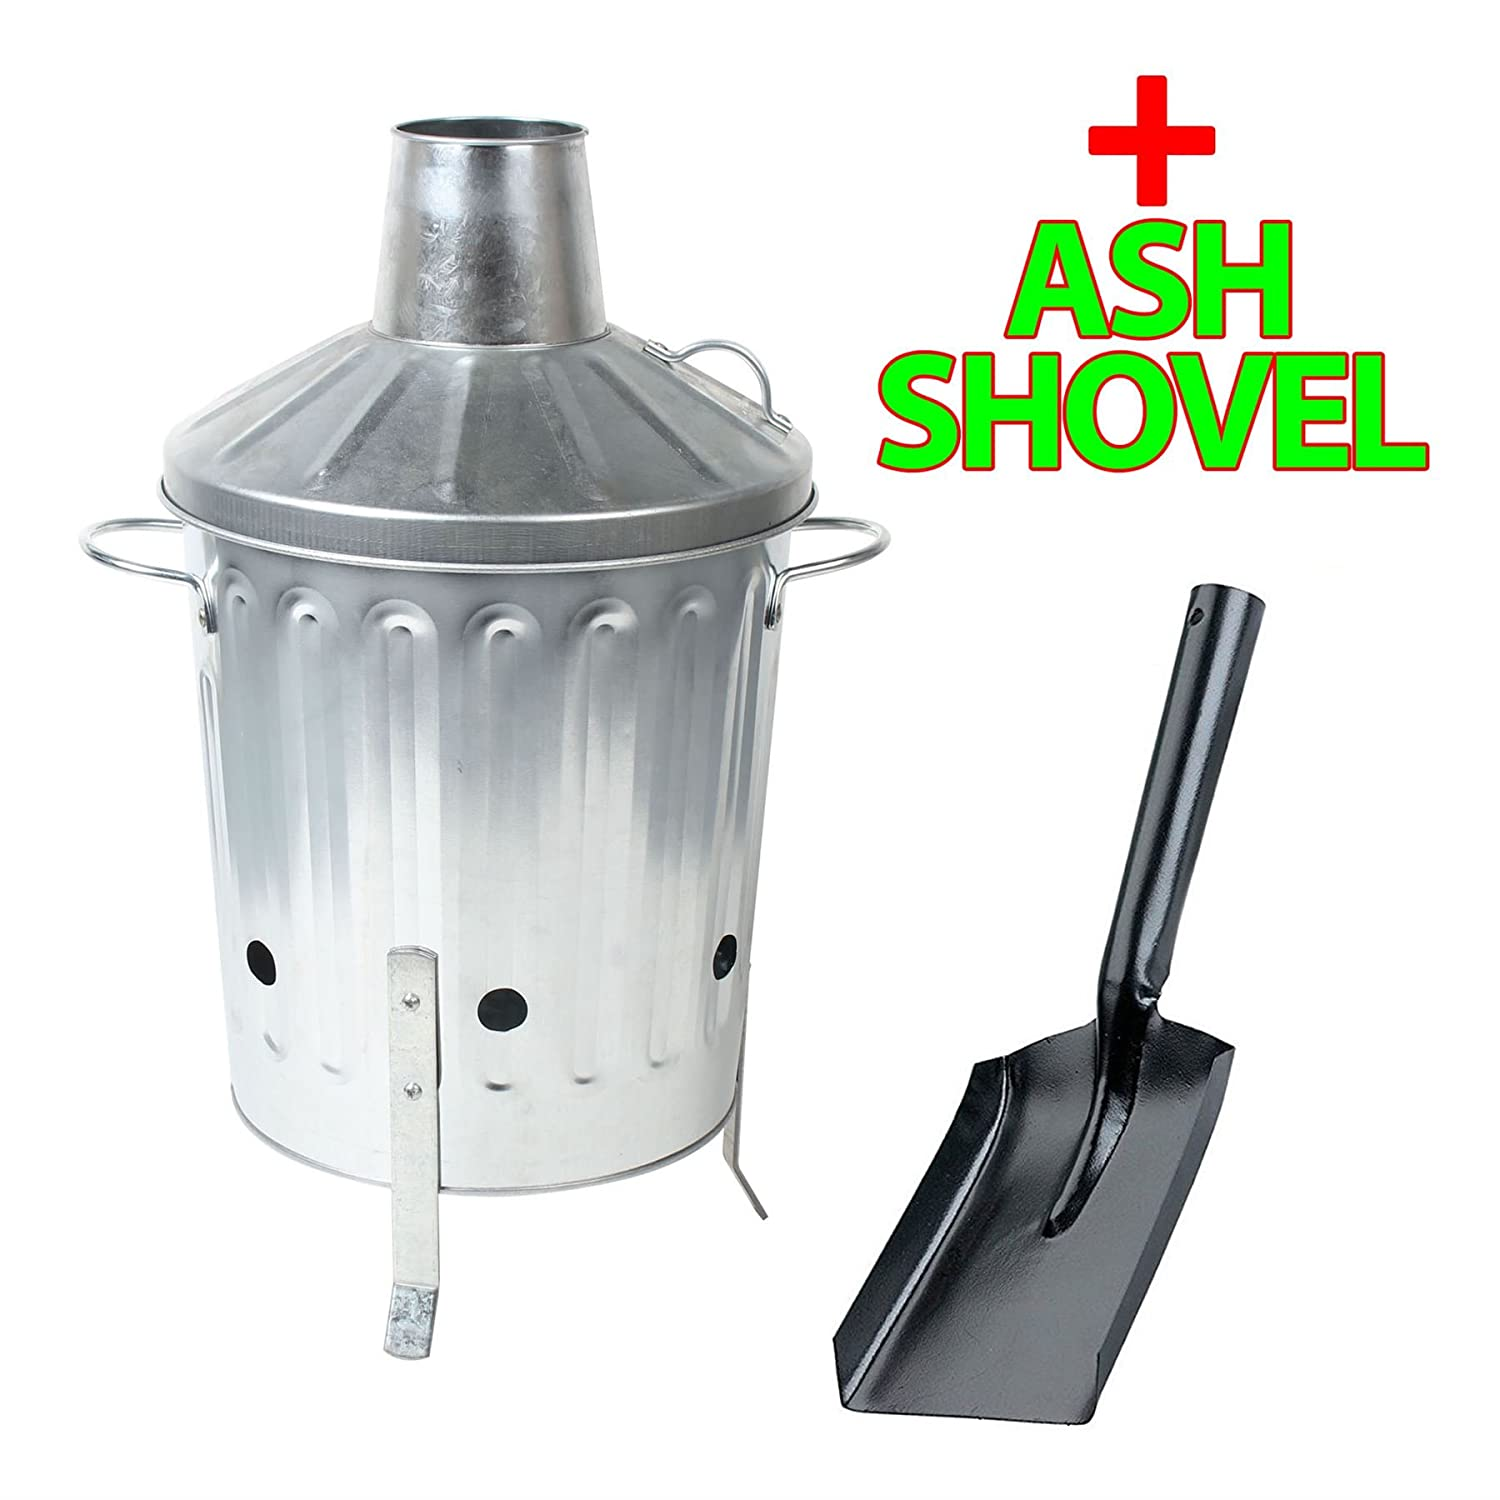 CrazyGadget® 15L 15 Litre Galvanised Metal Incinerator Mini Garden Fire Bin & ASH SHOVEL for Burning Wood, Leaves, Paper etc